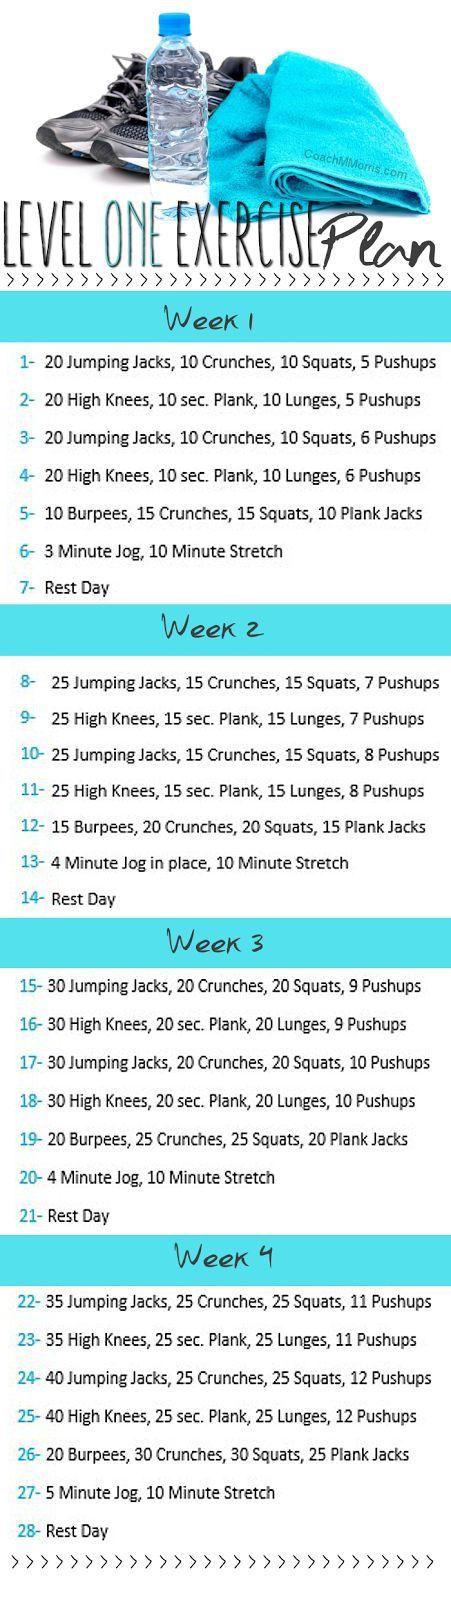 Workout plan for 60days. | Excersises | Pinterest | Workout plans ...